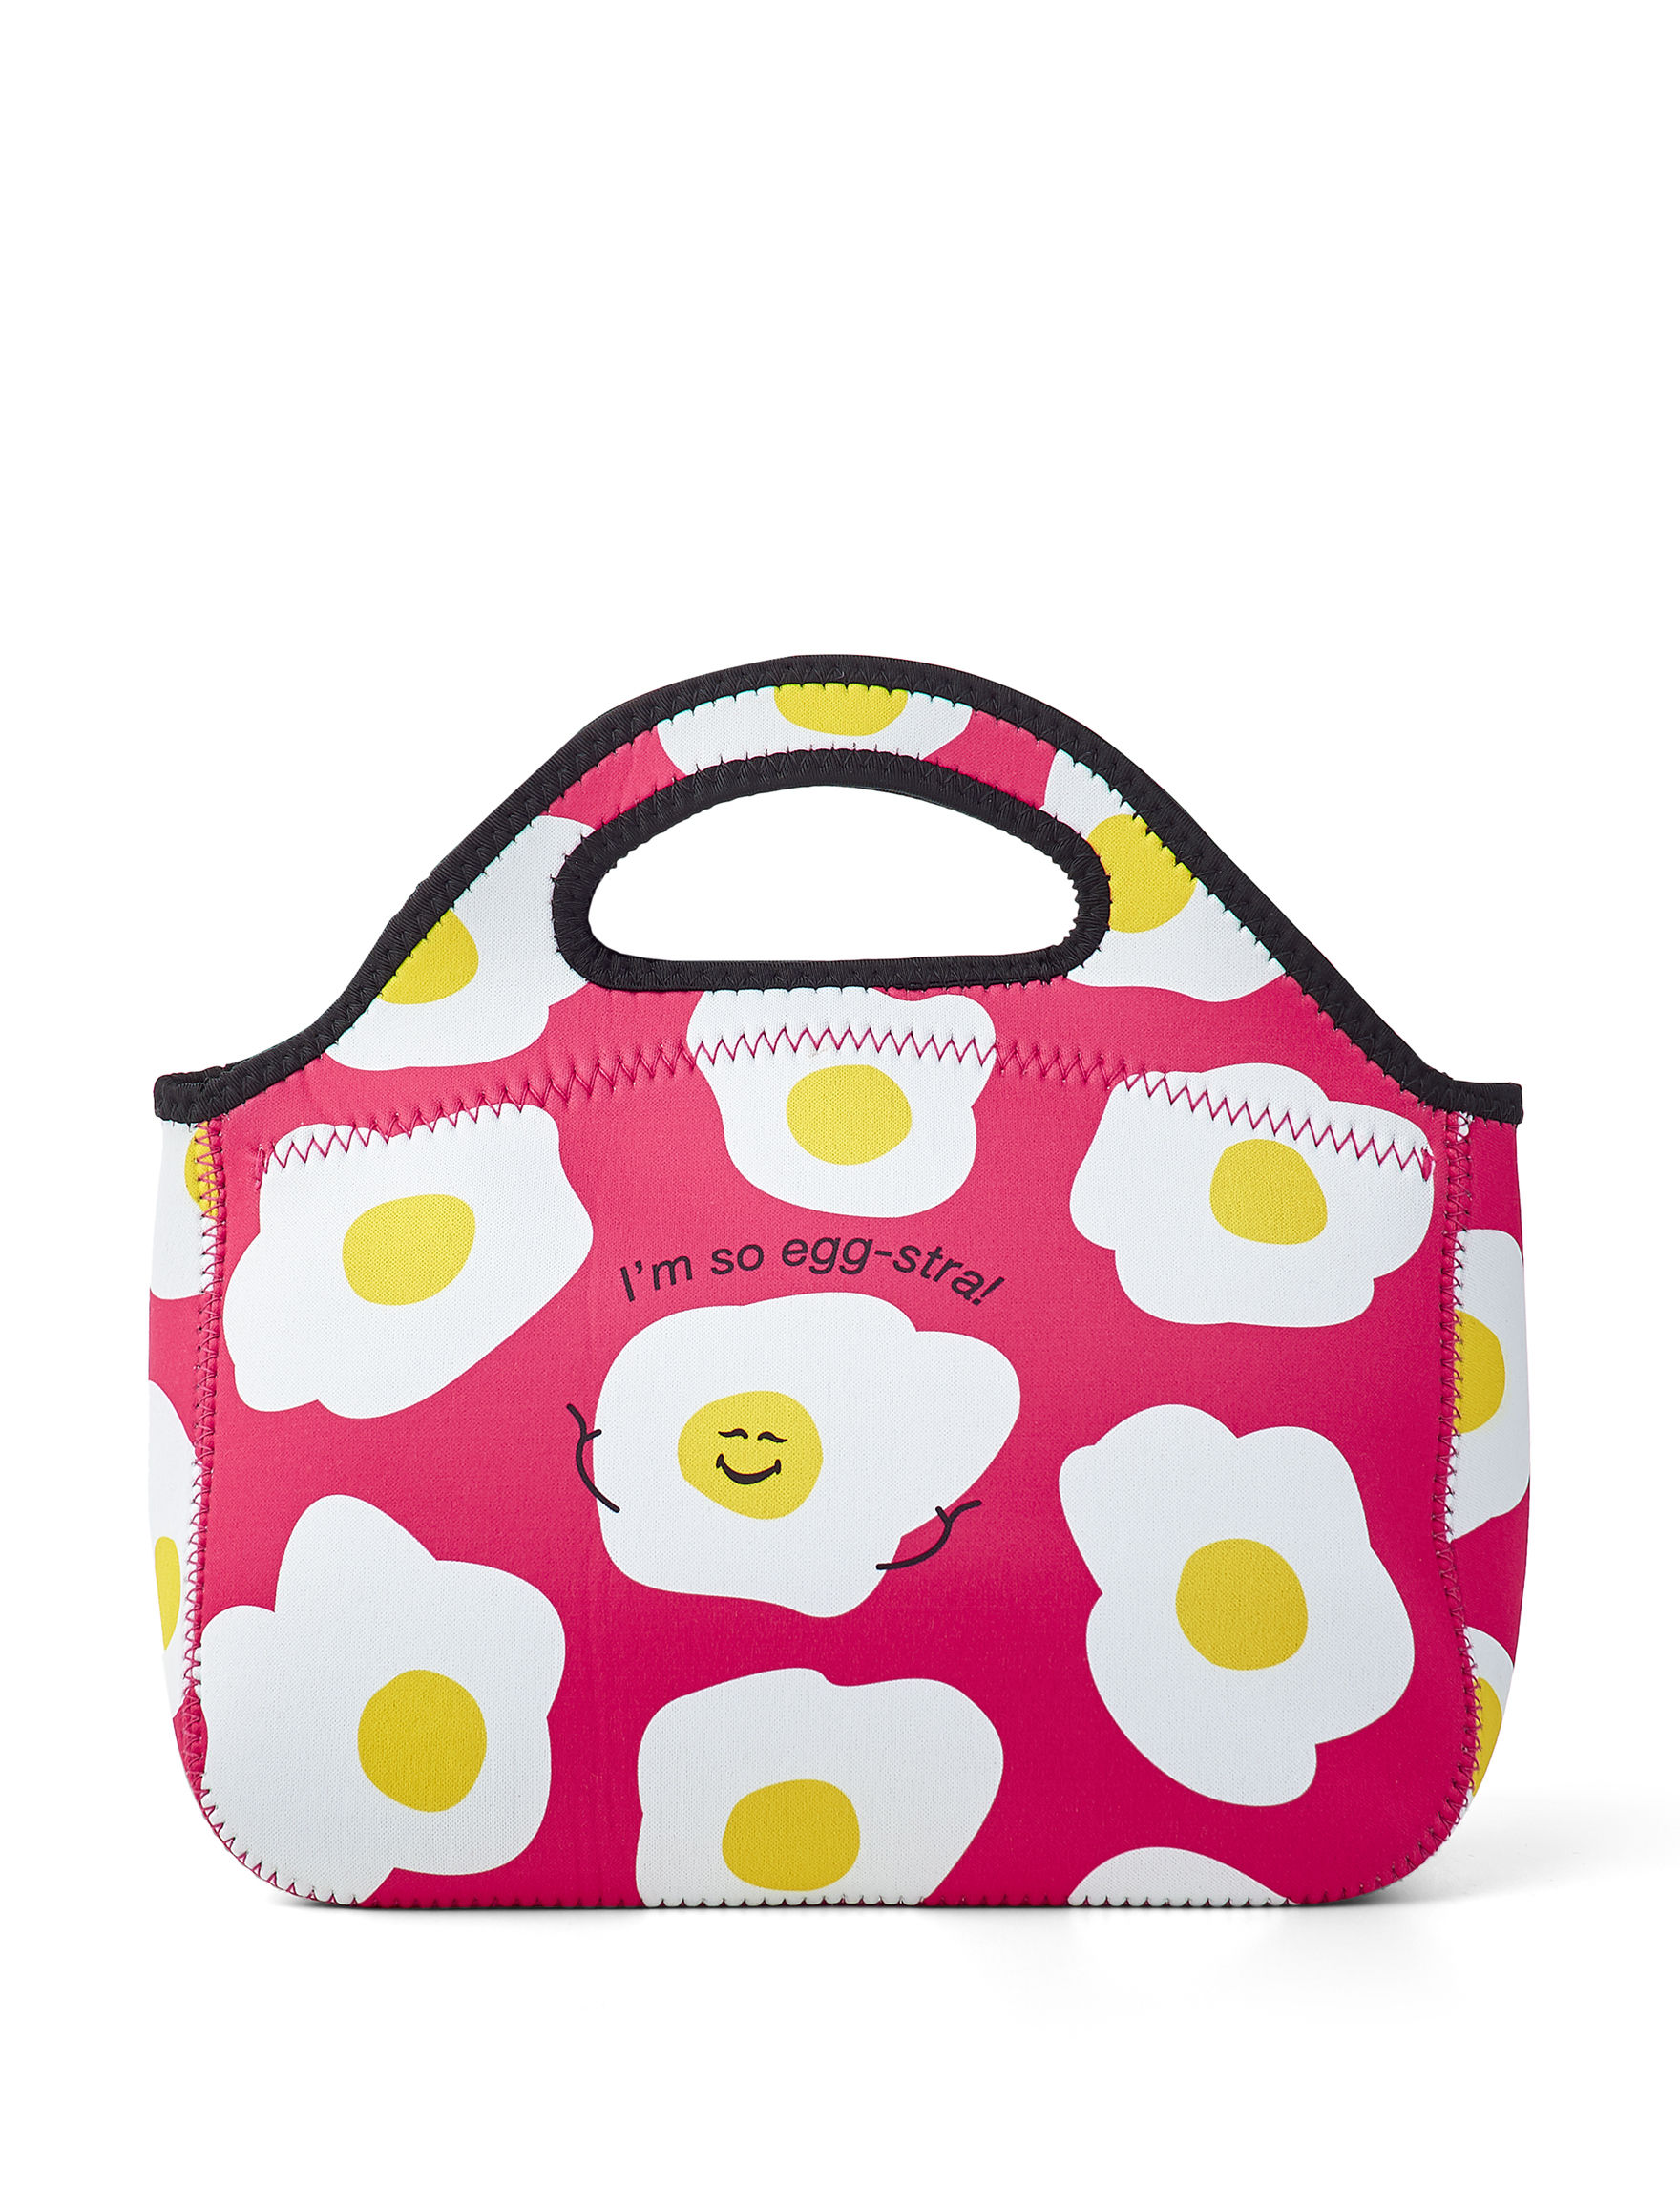 My Corporate Expressions Pink Multi Lunch Boxes & Bags Kitchen Storage & Organization